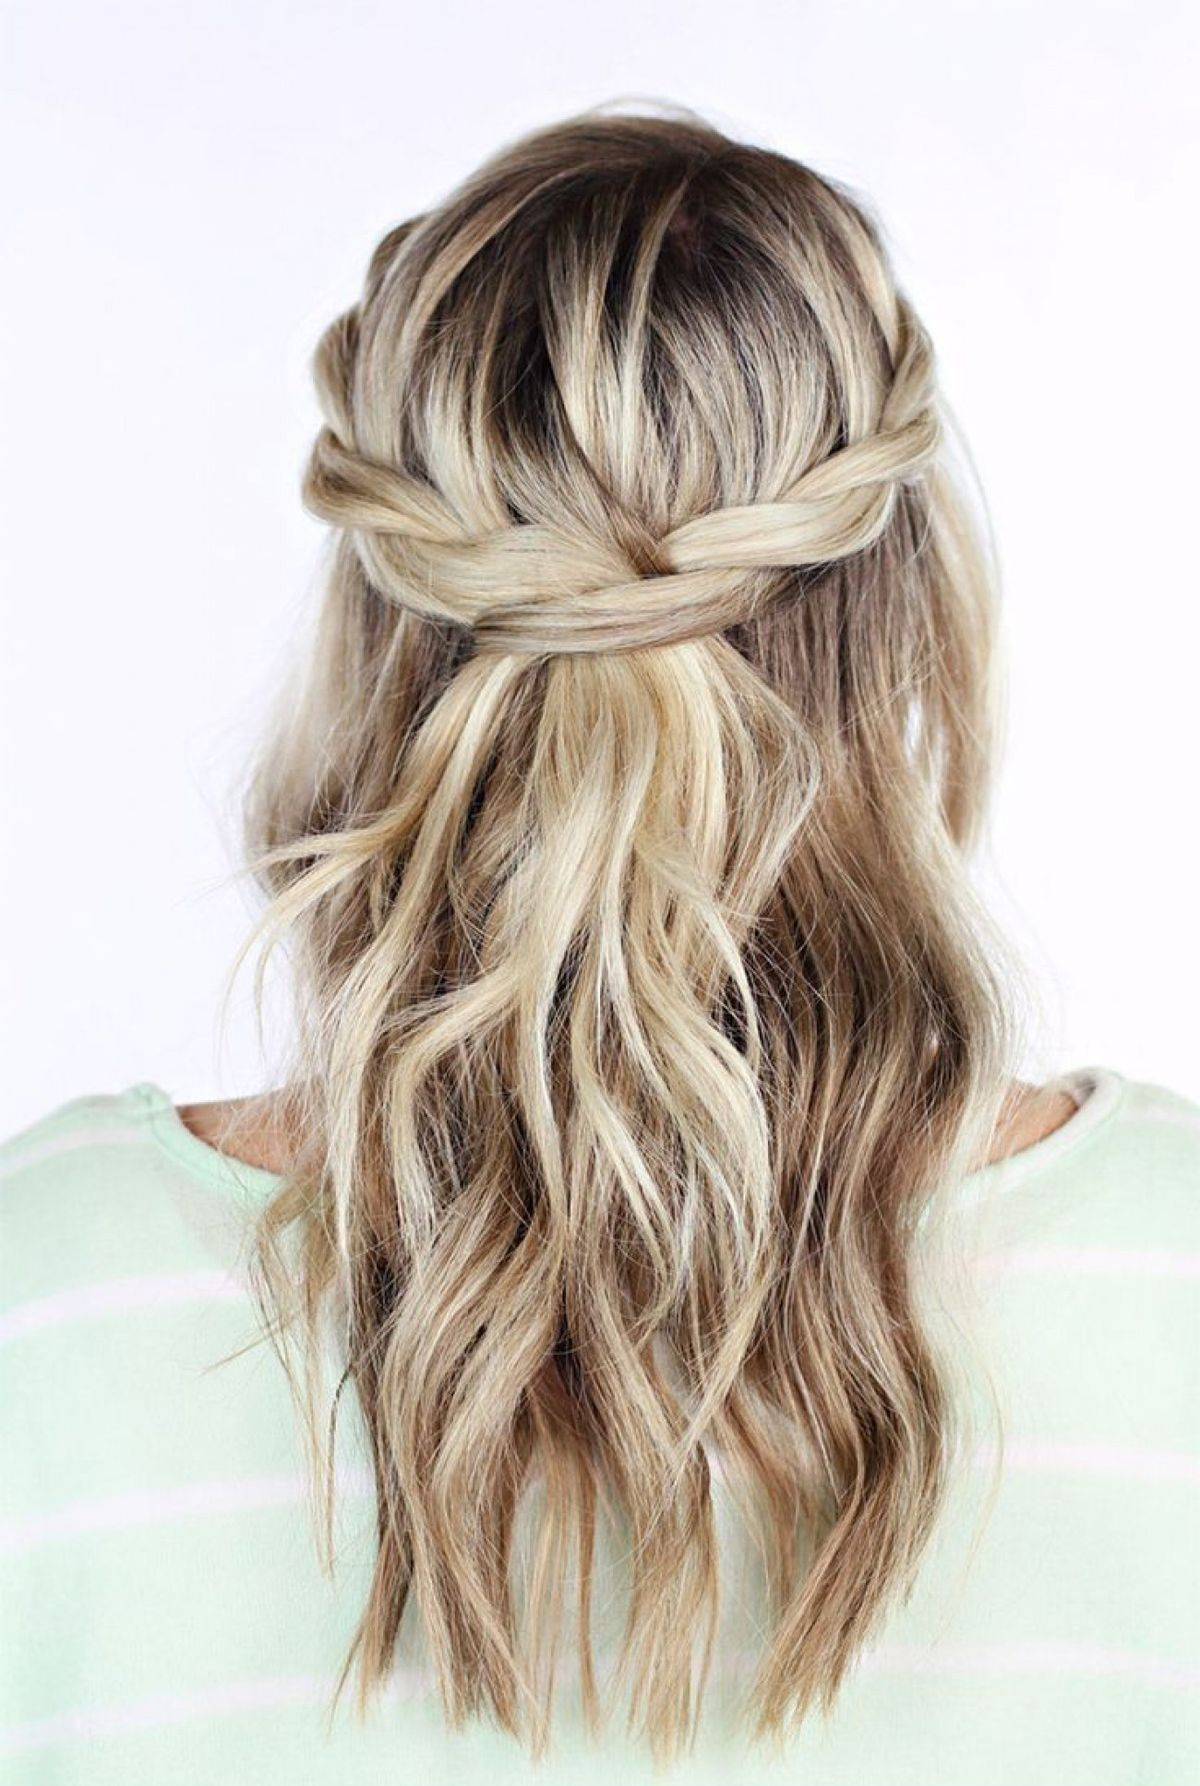 unique braided hairstyles for girls u casual braids with open hair